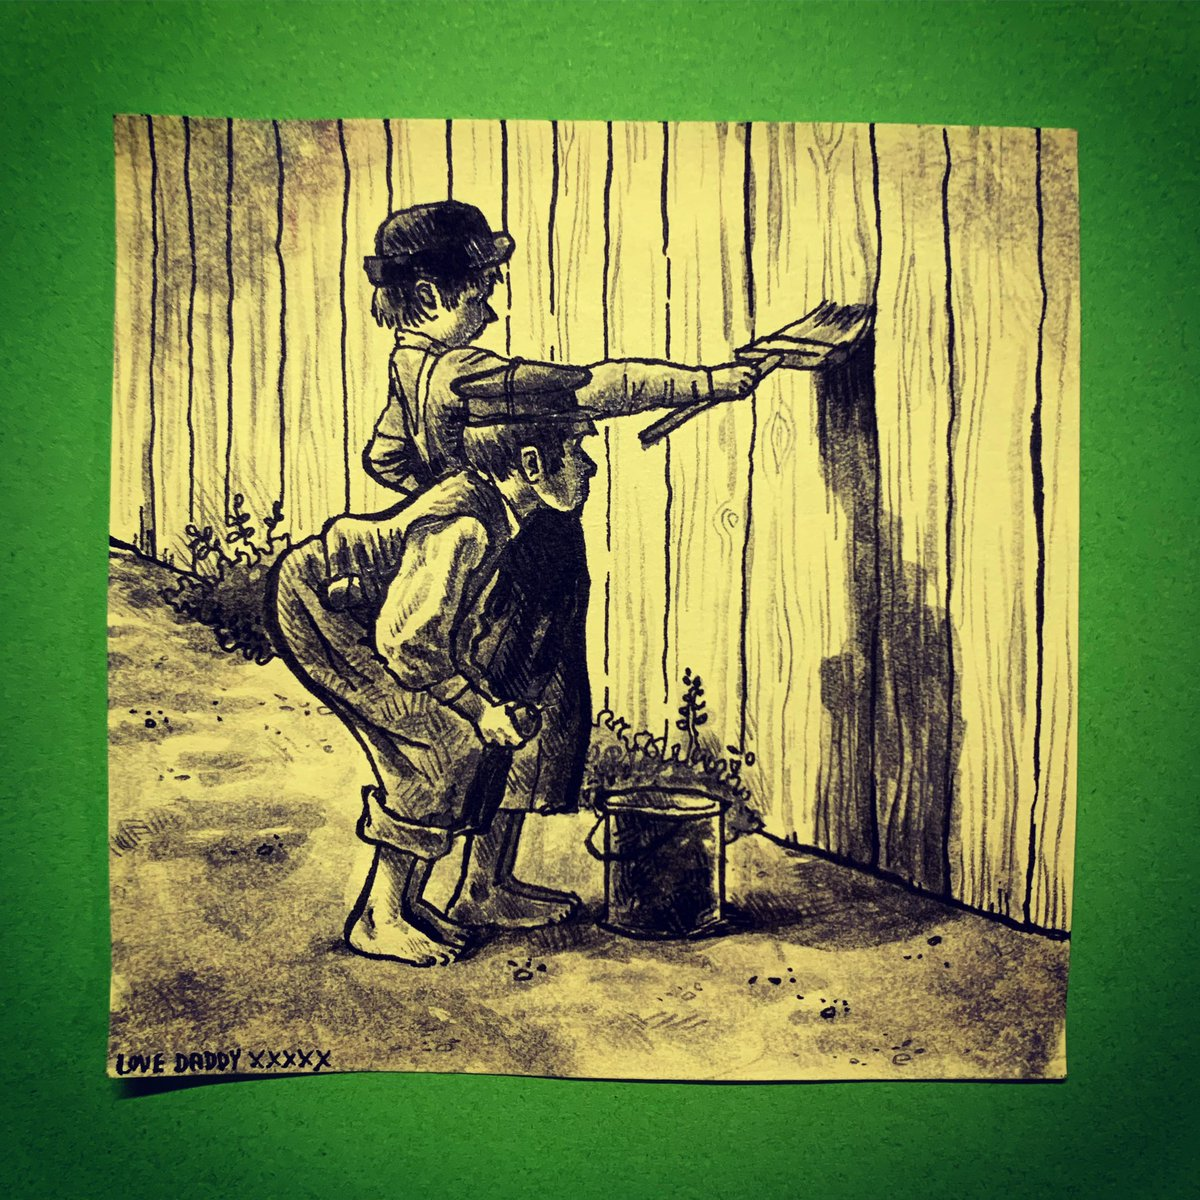 Today, Poppy's #PackedLunchPostIt features Tom Sawyer and Huckleberry Finn whitewashing the fence. Requested by eldest daughter @ellaohno (we read the books together when she was about 12).